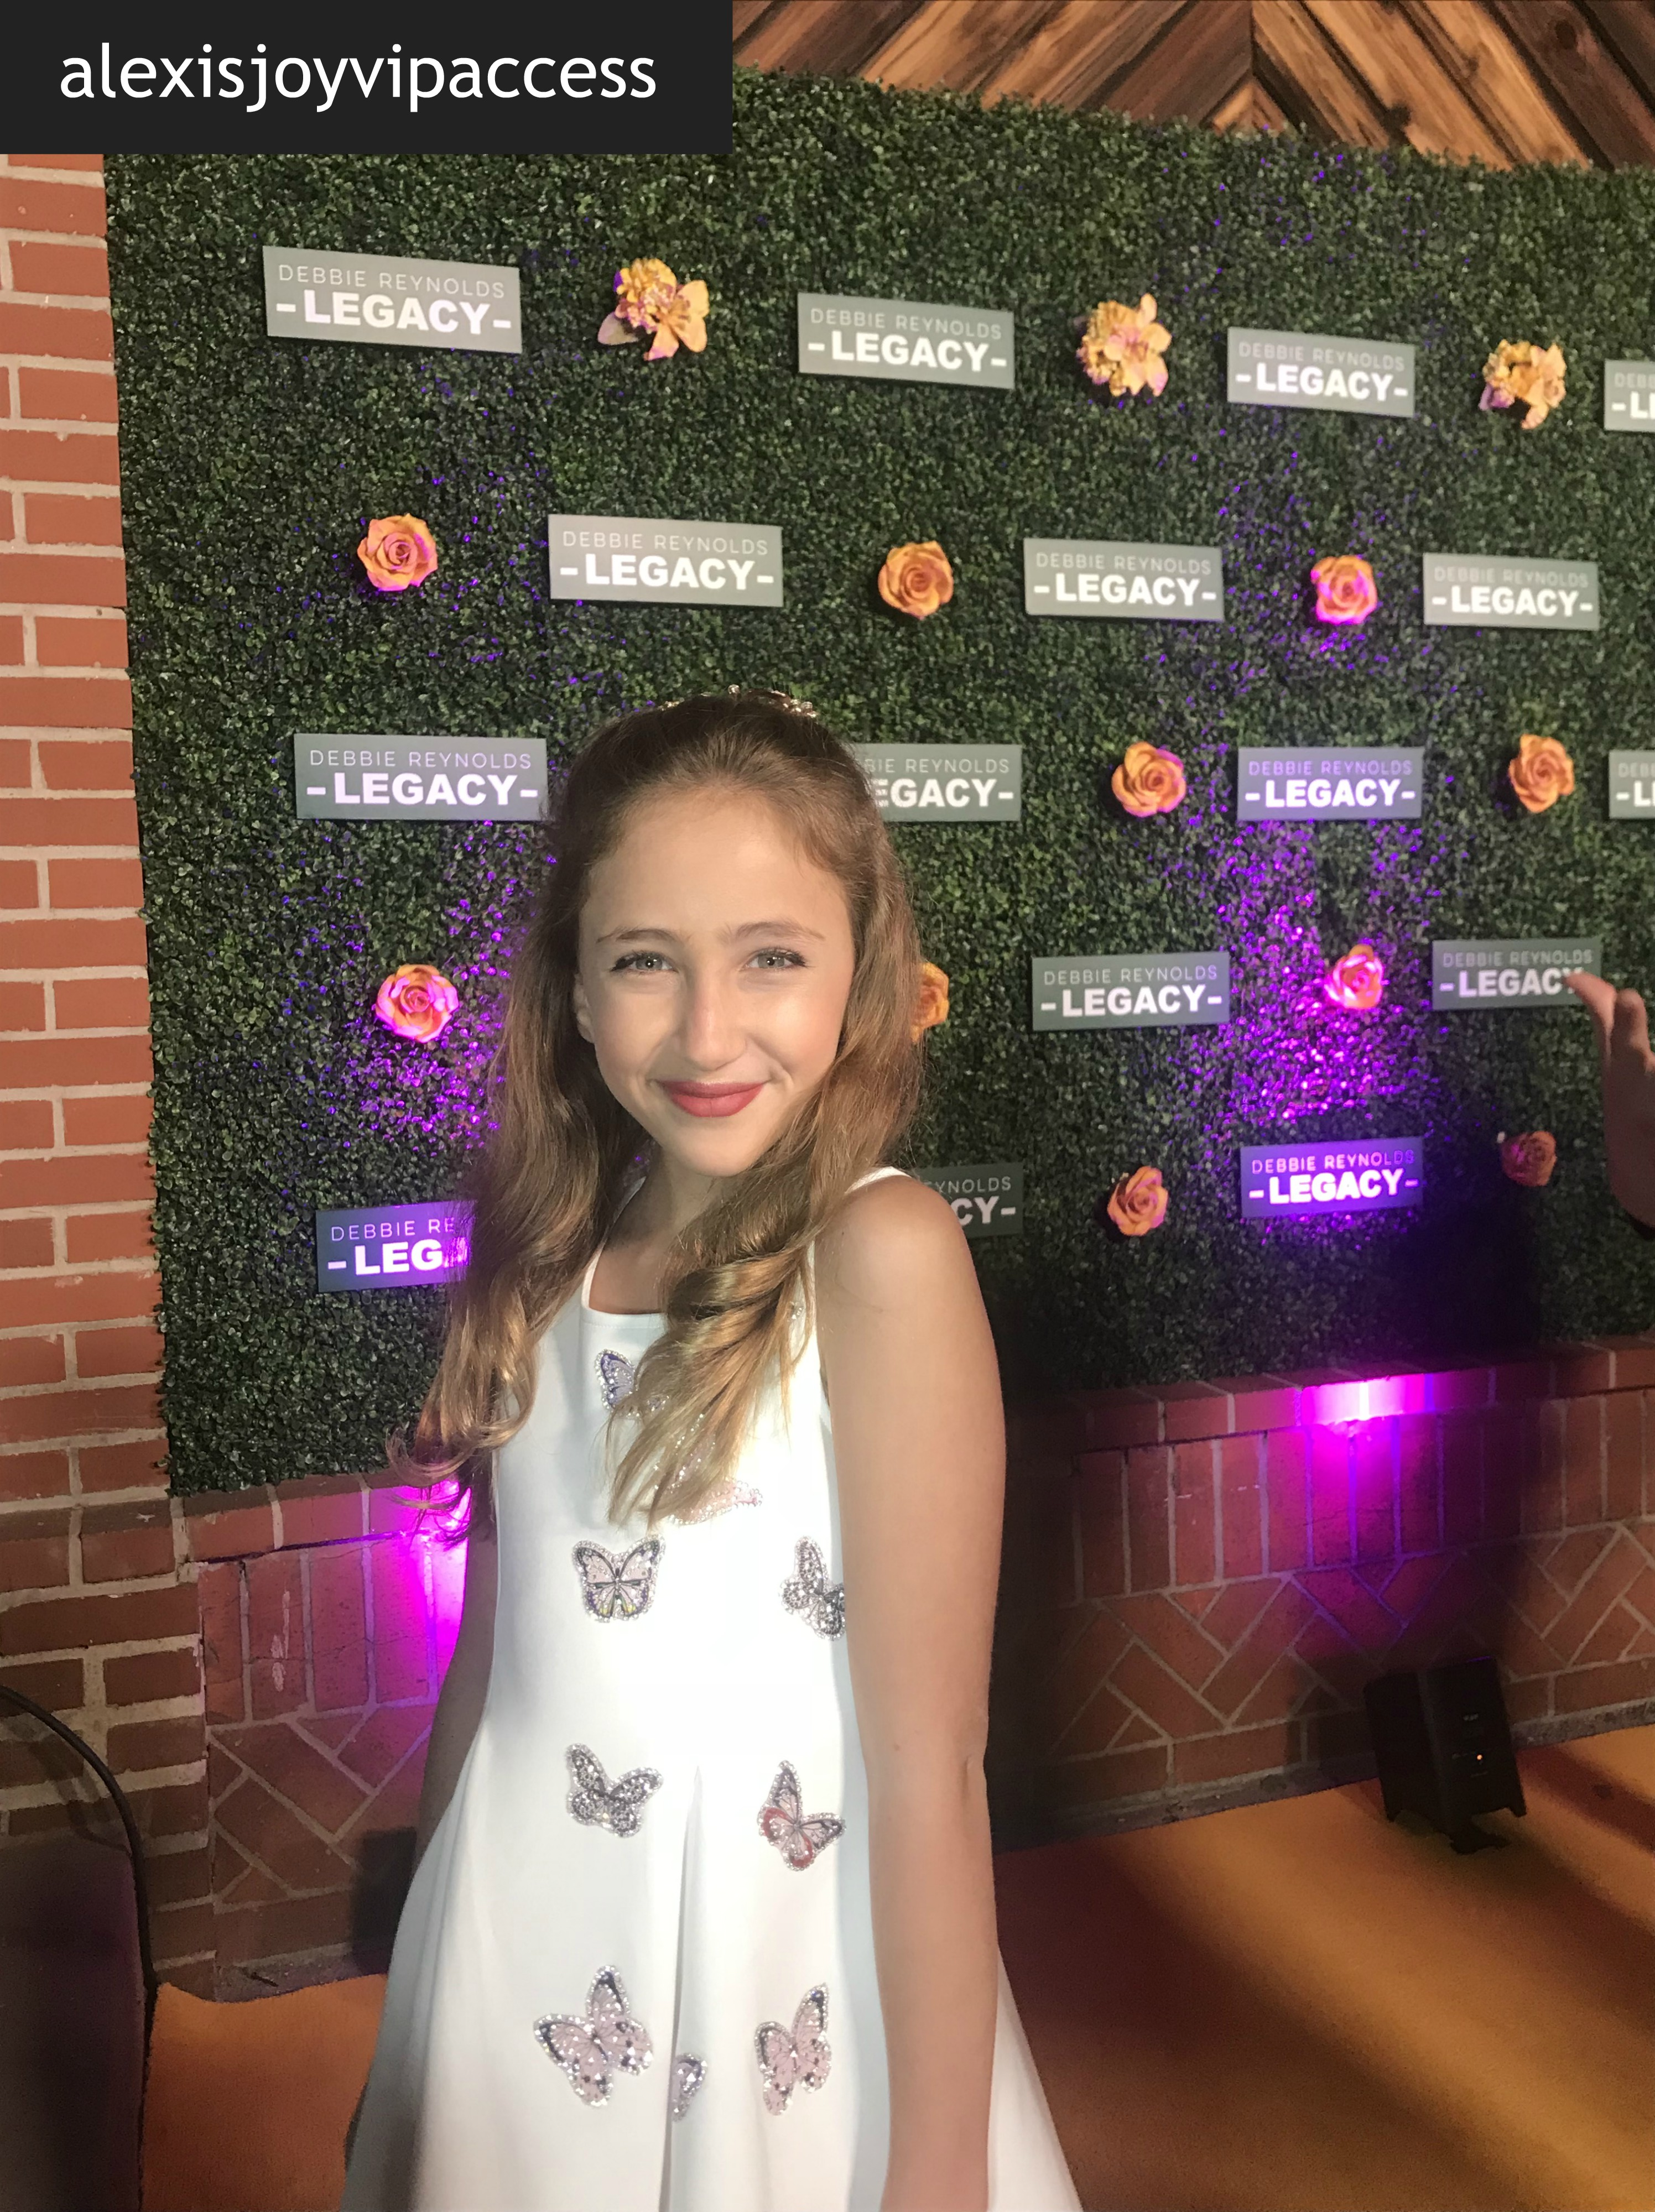 Vipaccessexclusive Ava Kolker Interview With Alexisjoyvipaccess At The Debbie Reynolds Legacy Studios Grand Opening Alexisjoyvipaccess